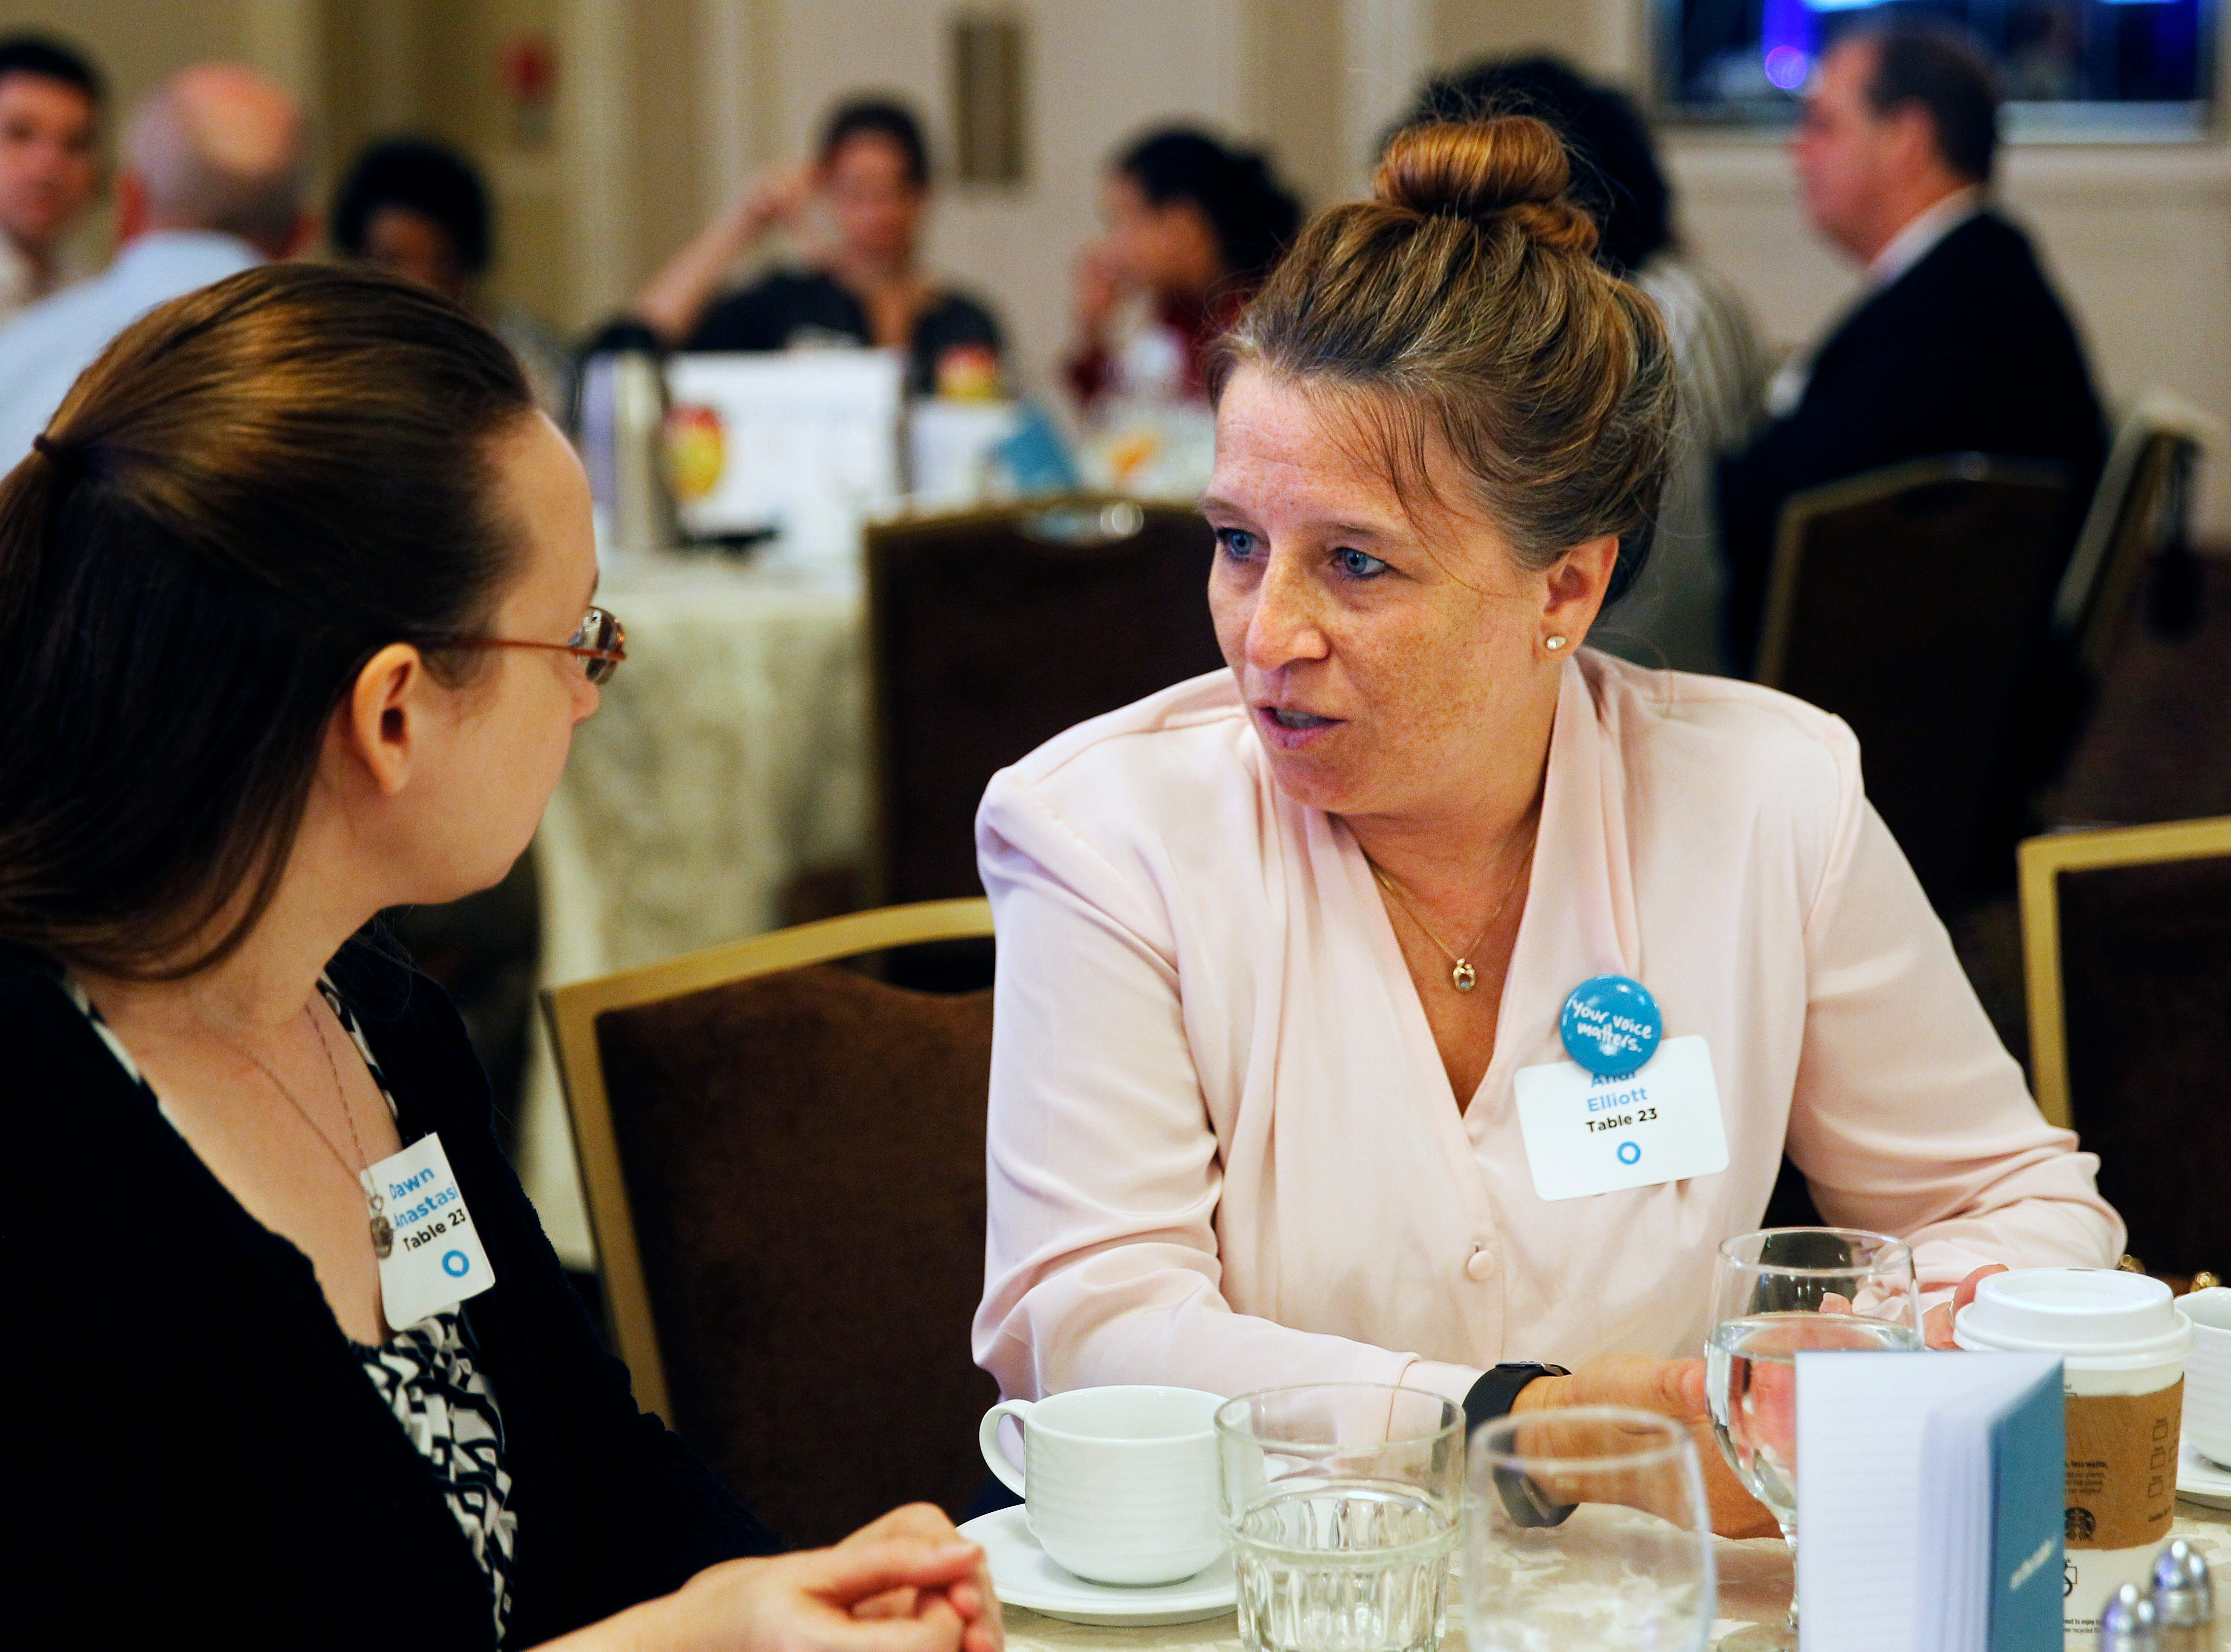 Andi Elliott (right), chief executive officer at Community Advocates Inc., talks with Dawn Anastasi from the Apartment Association of South Eastern Wisconsin at On the Table.